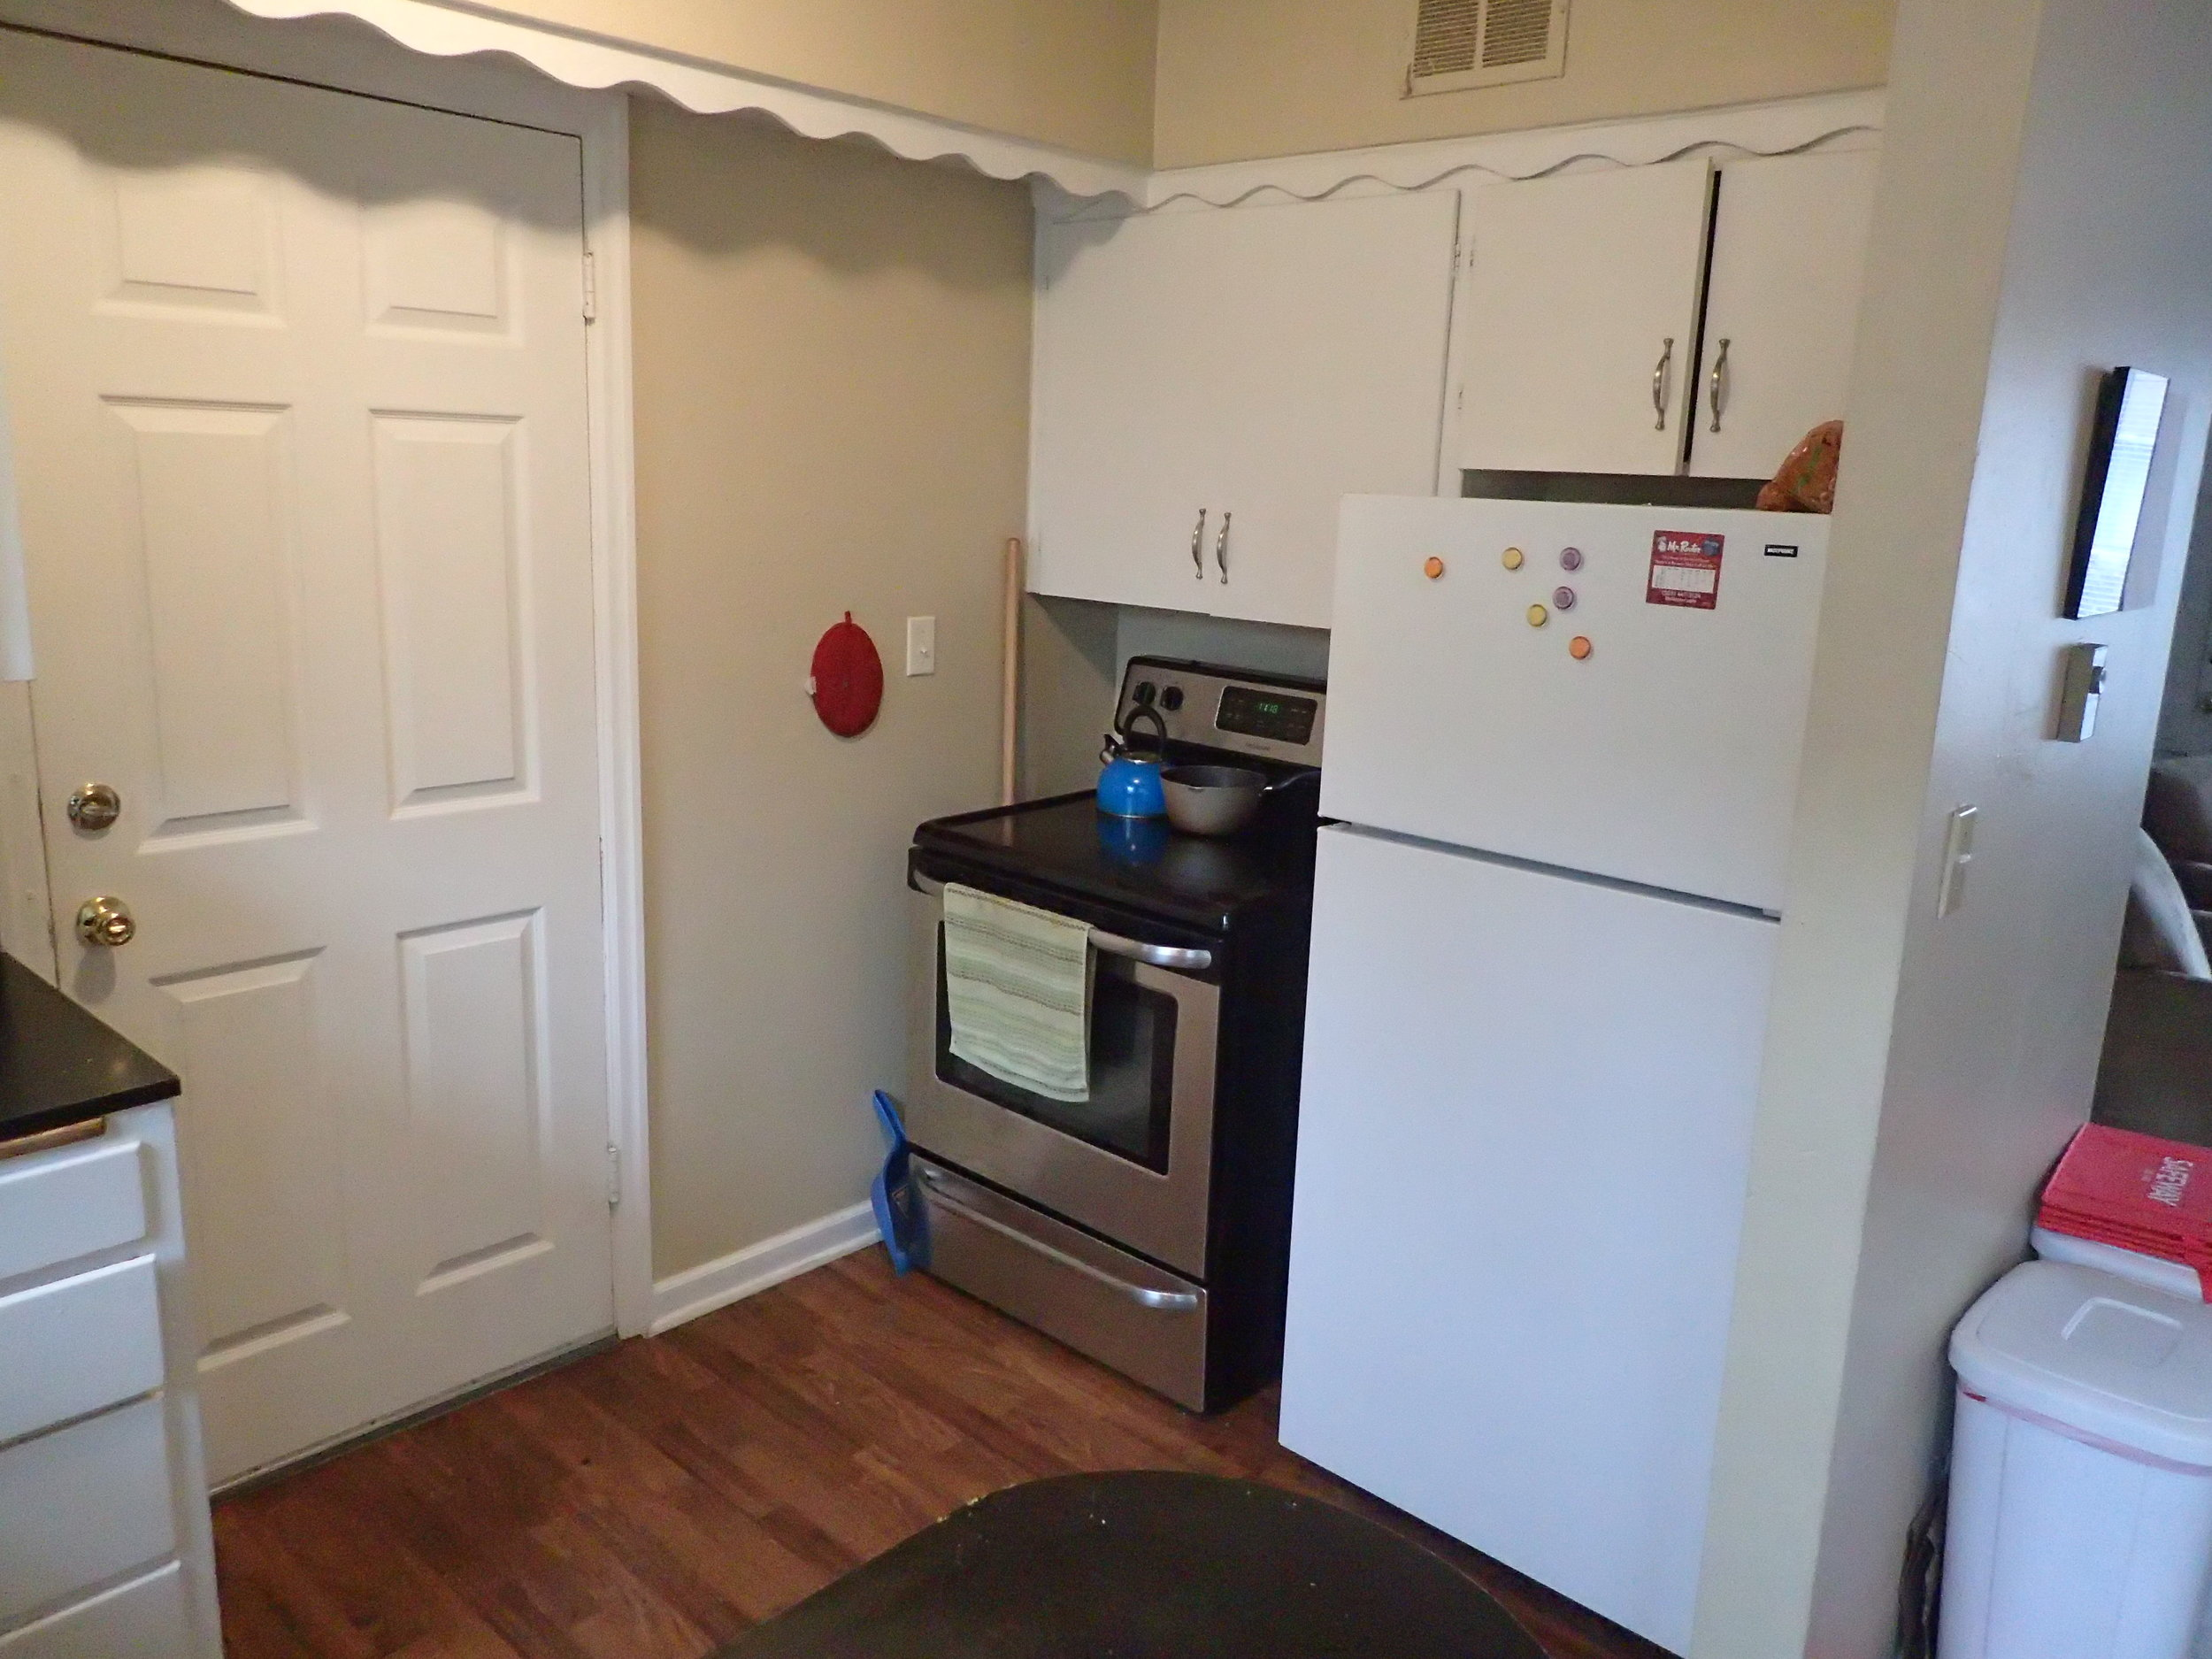 Duplex Kitchen.JPG